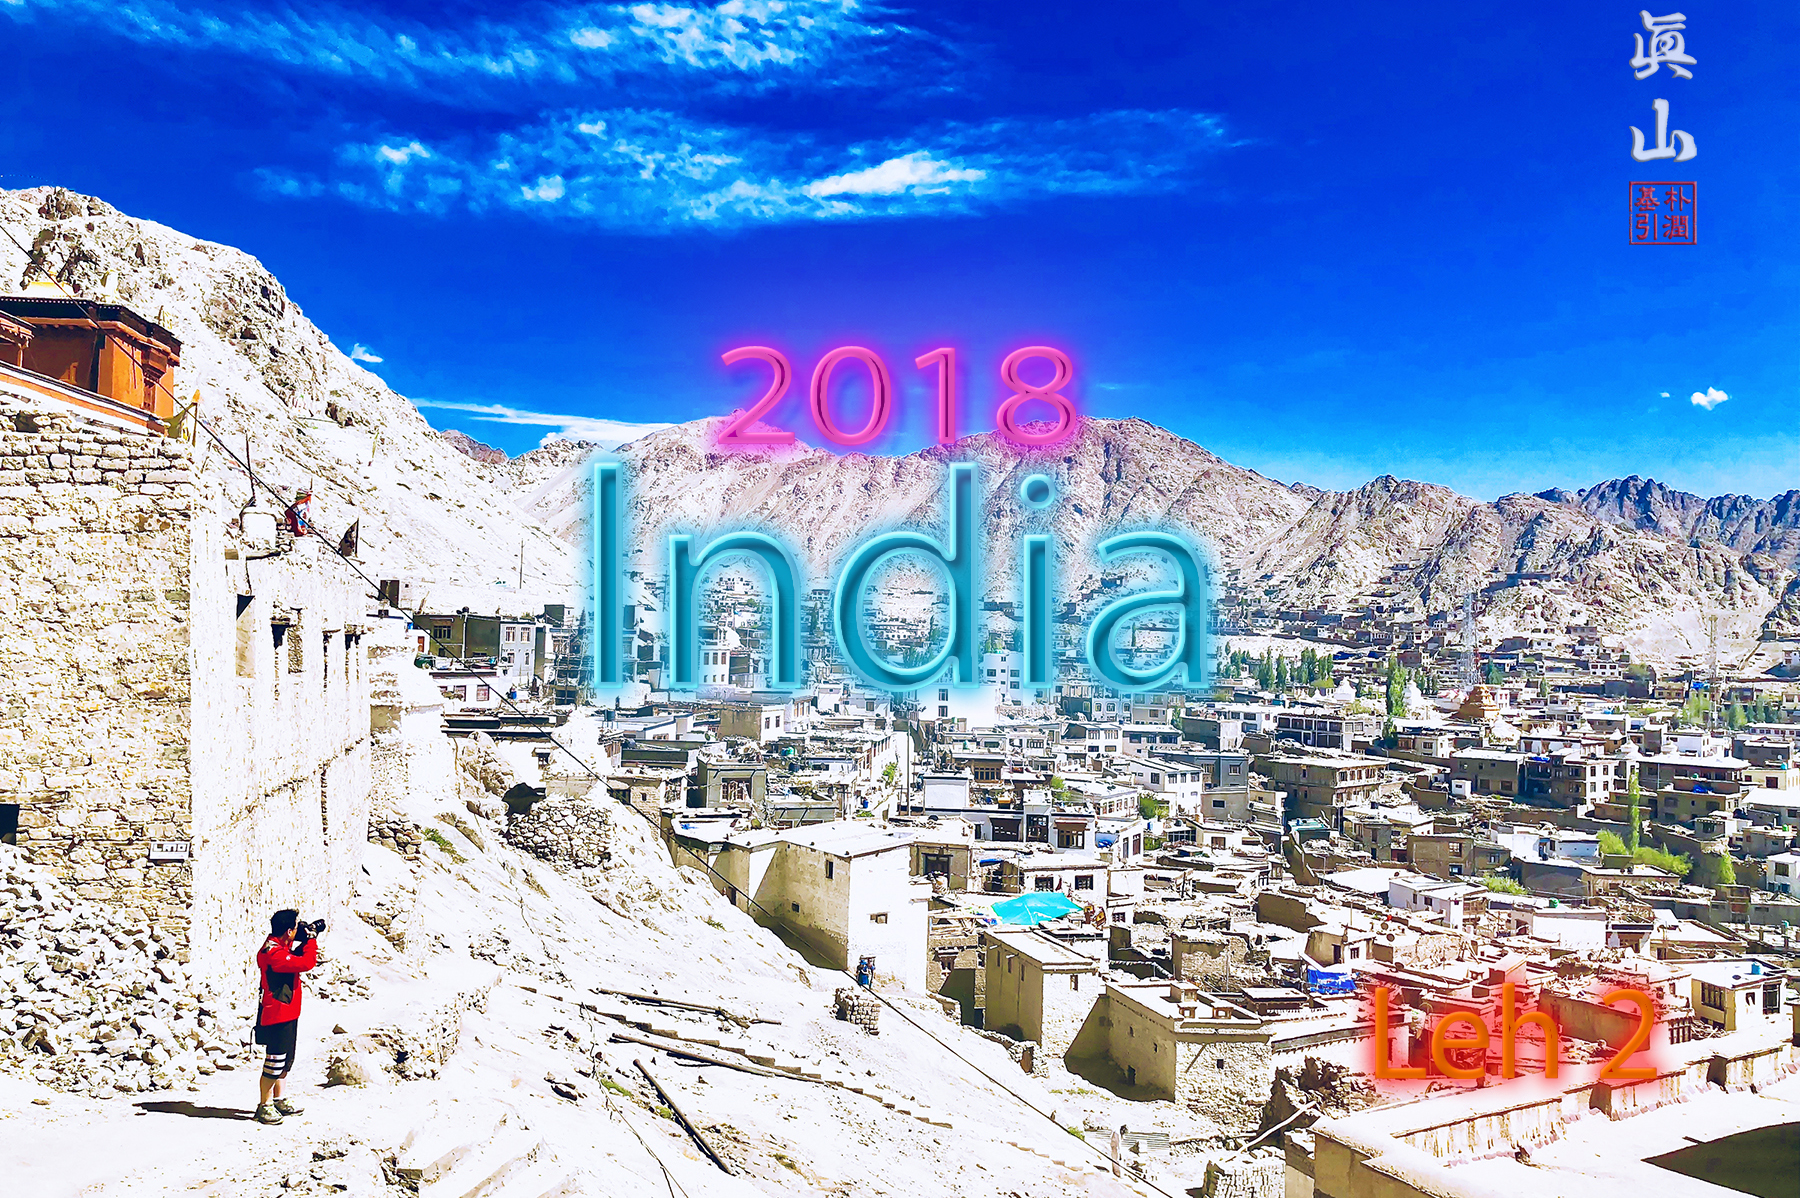 2018 India Tour - Leh 2, 8th day